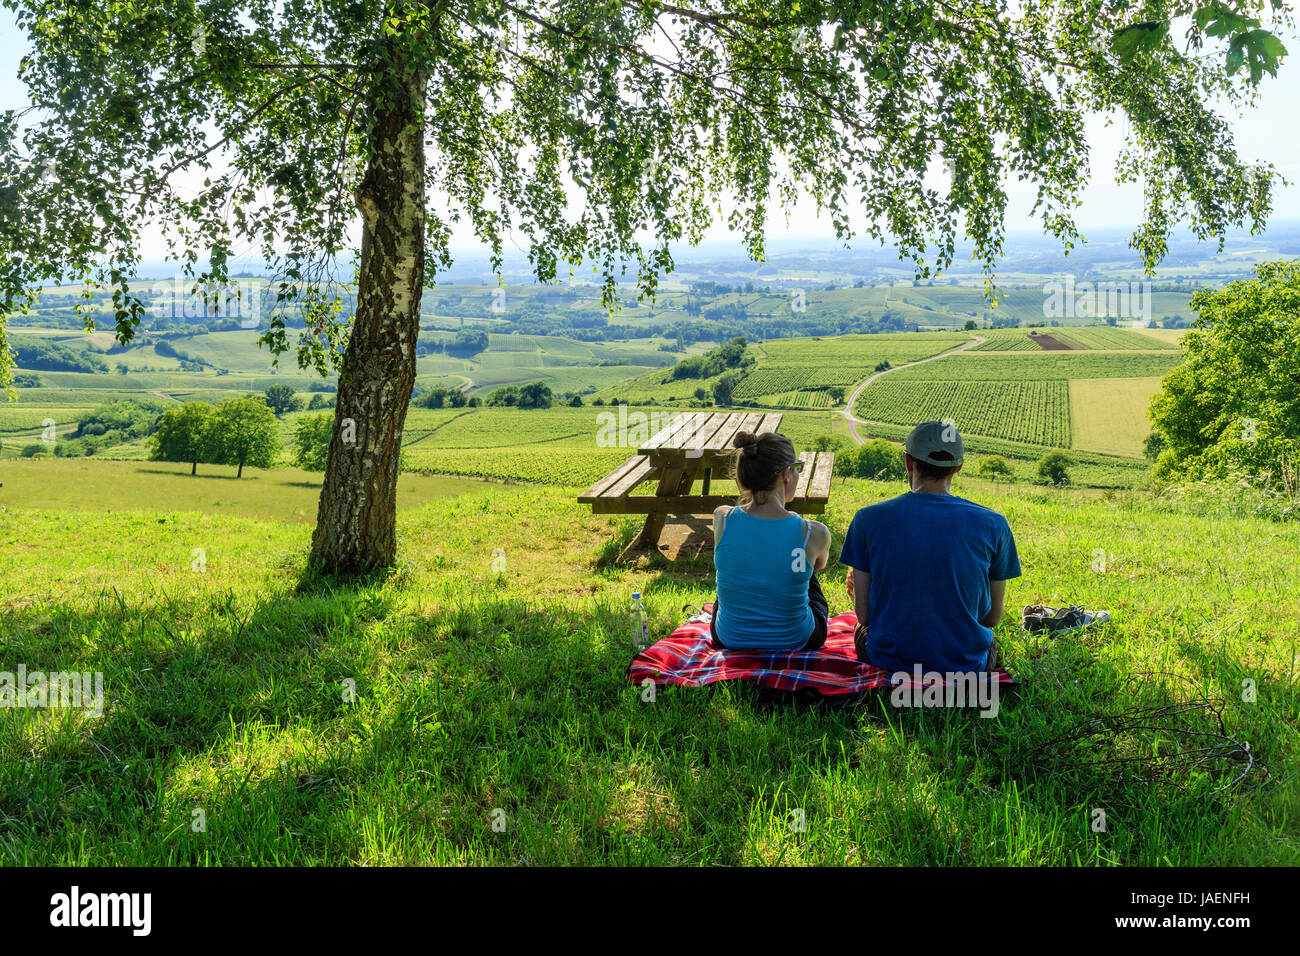 France, Jura, Pupillin, view of the  Pupillin vineyard and picnicking tourists - Stock Image